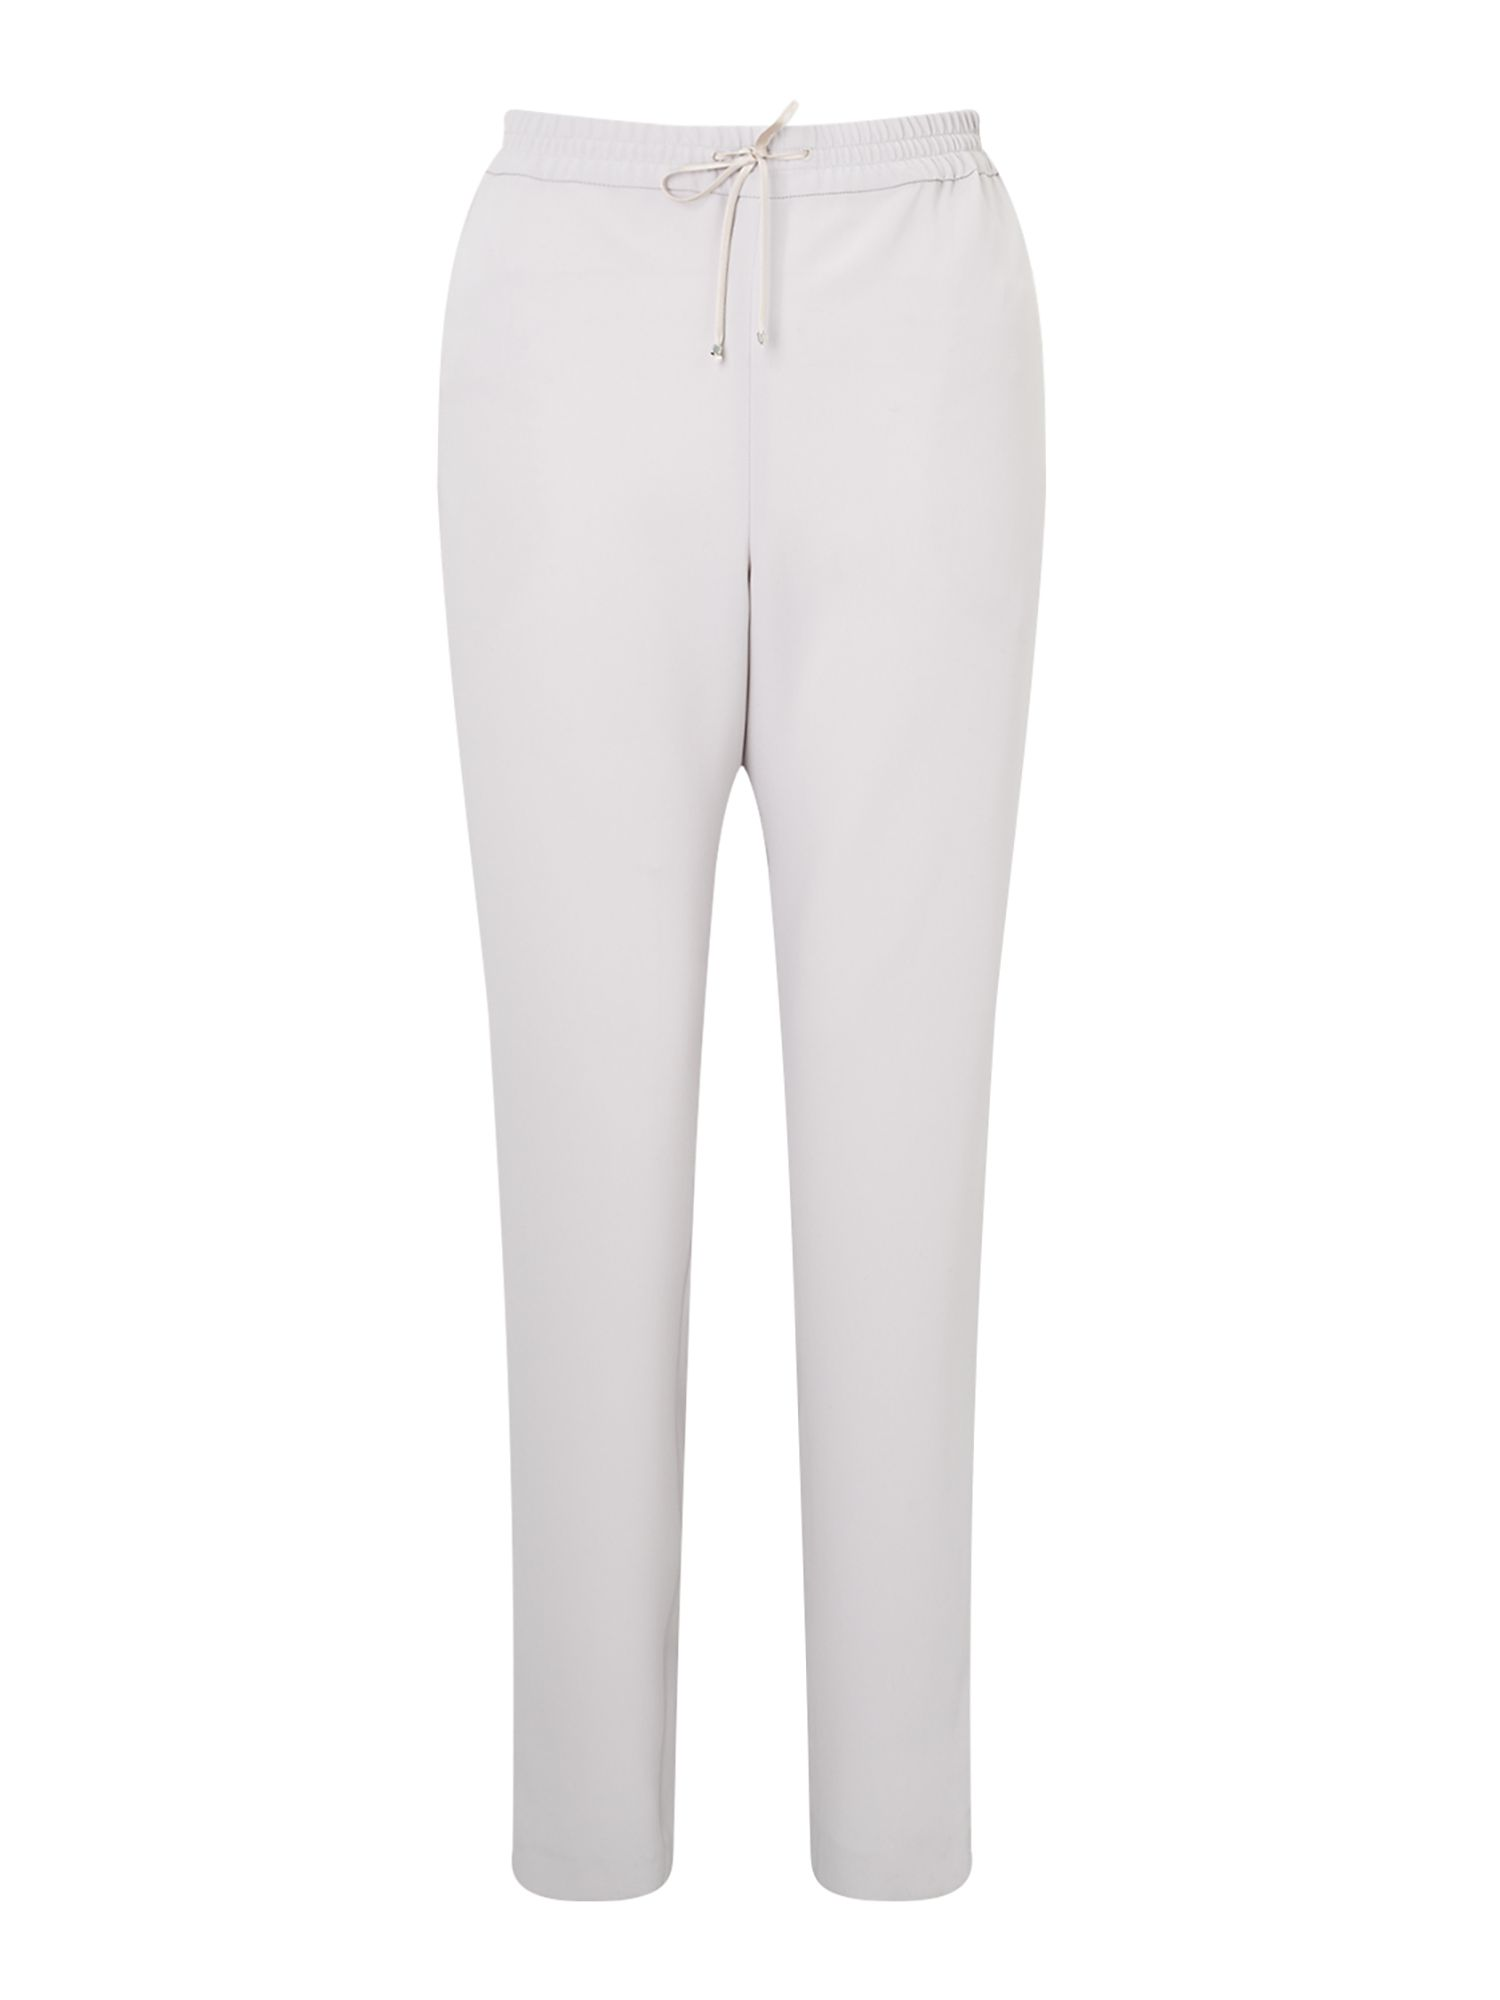 Jigsaw Cady Trouser, Cream